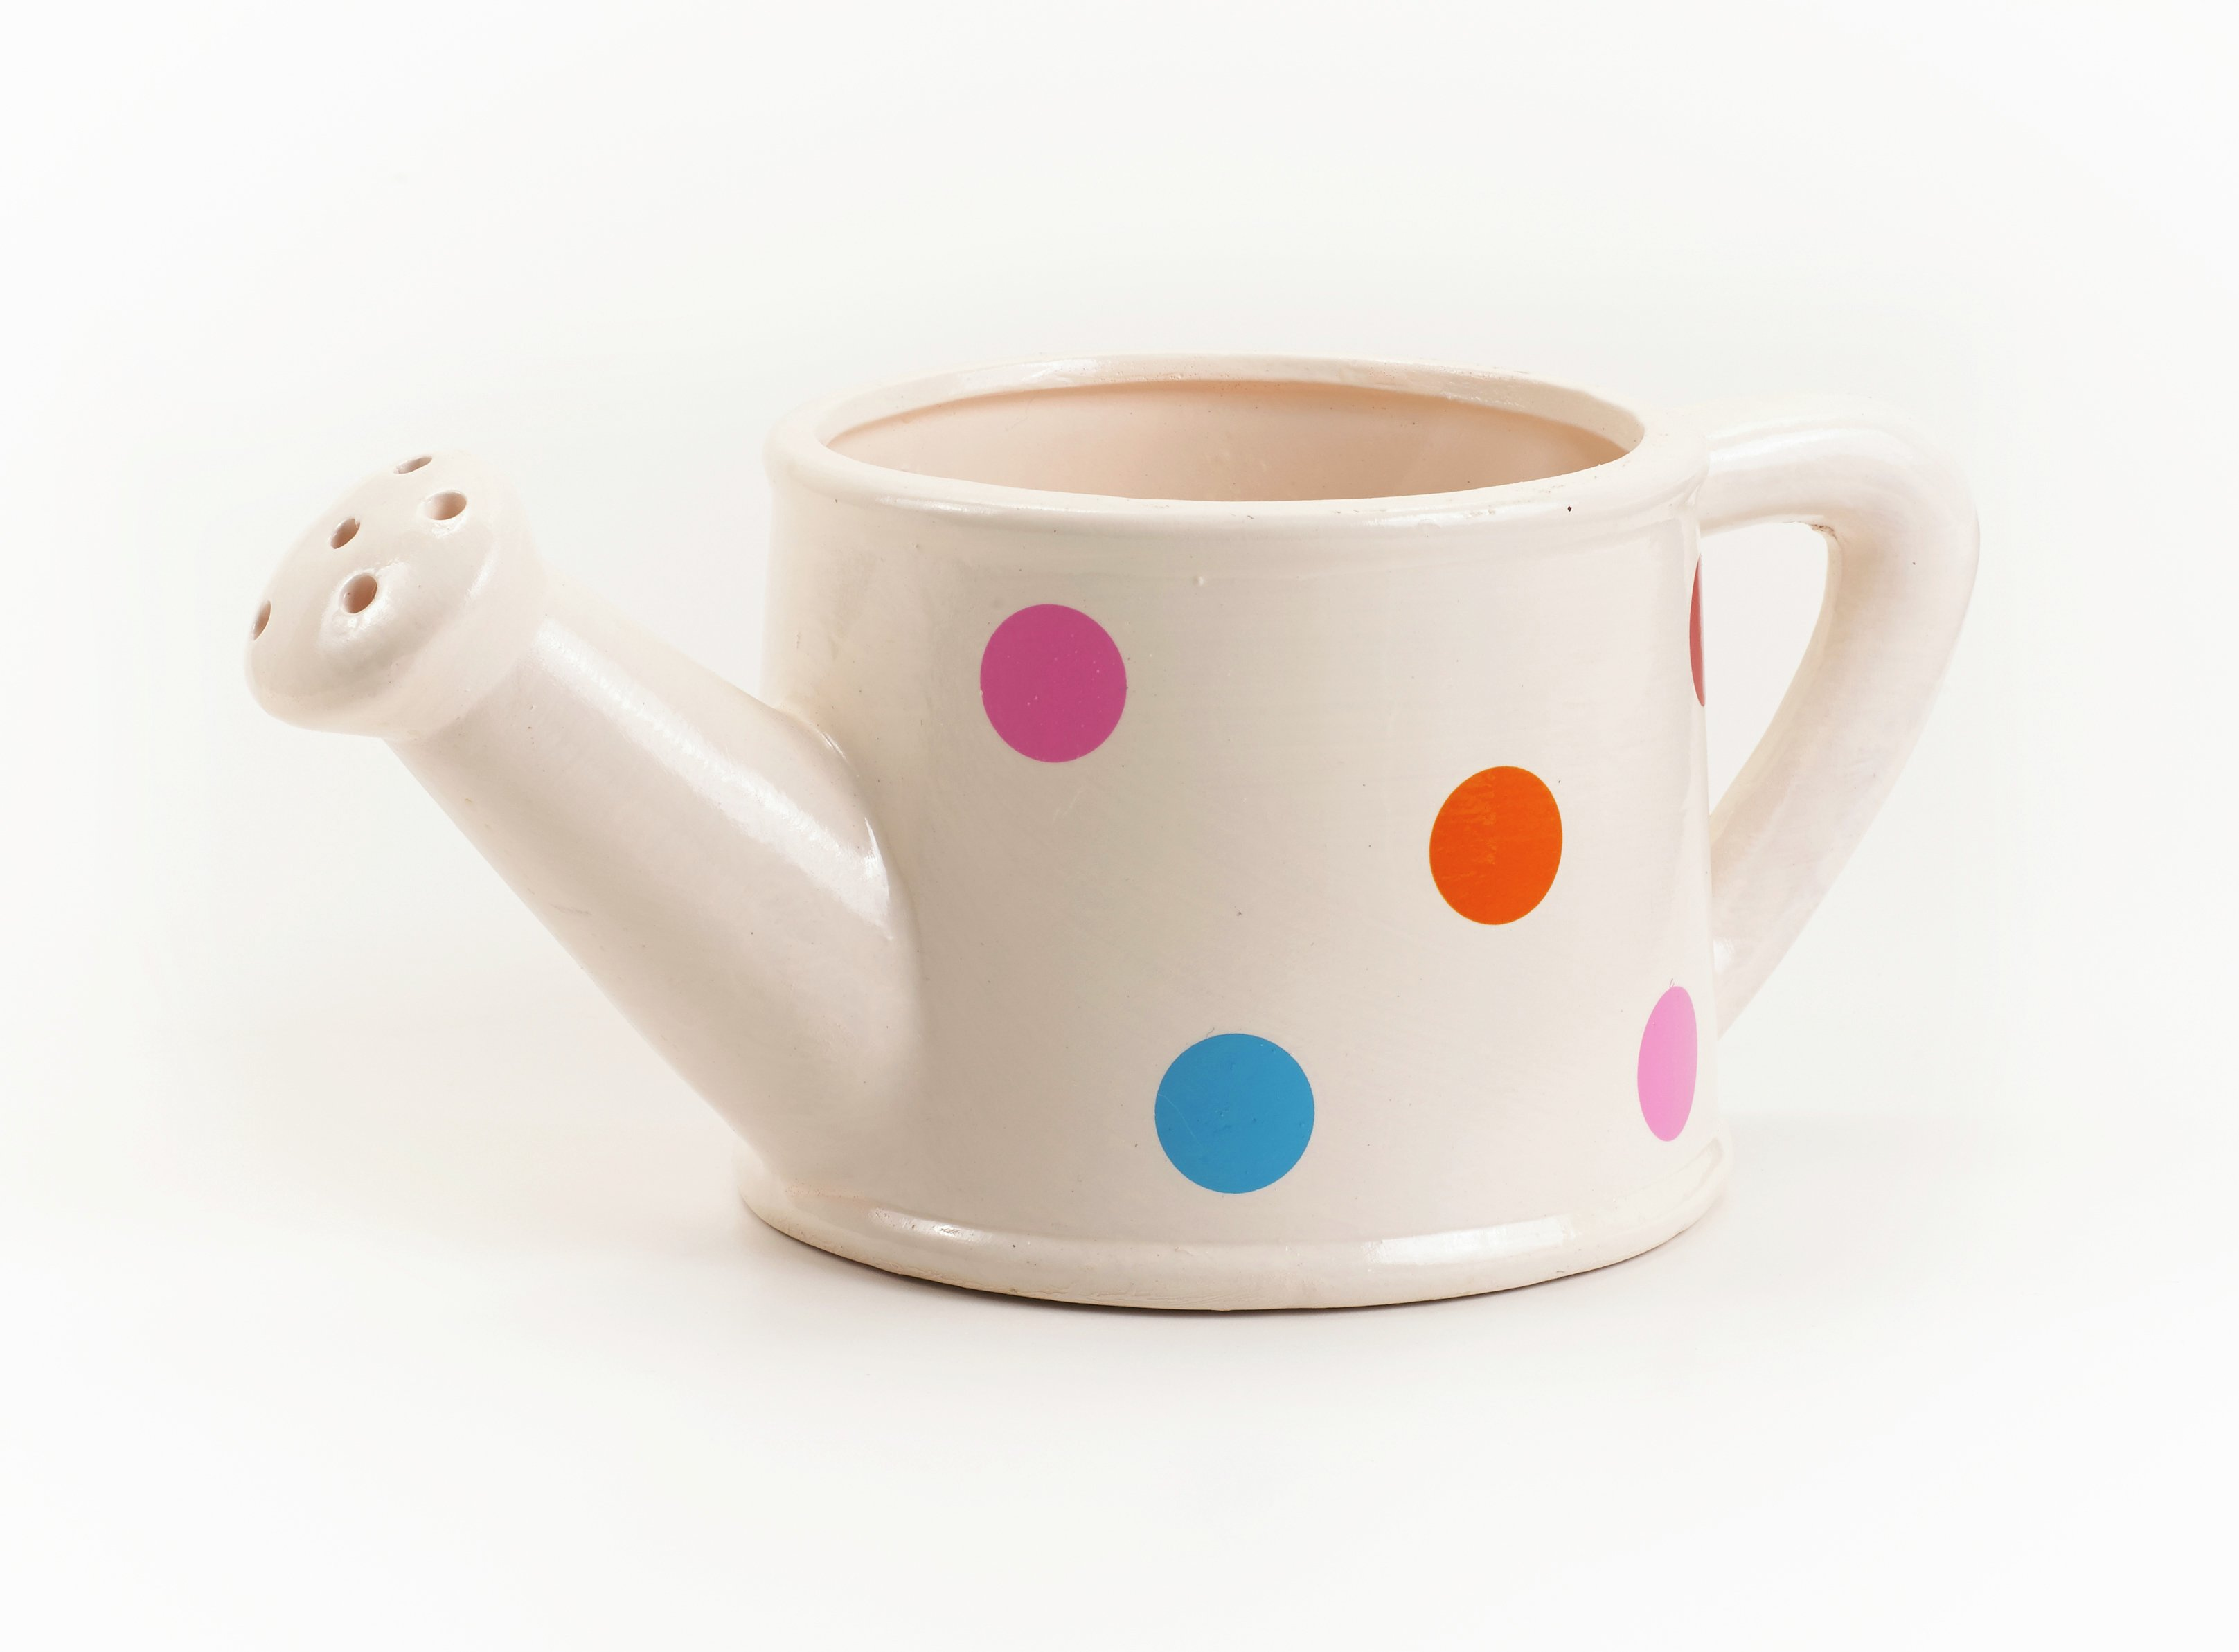 Ceramic - Spotty Watering Can - Garden Planter lowest price